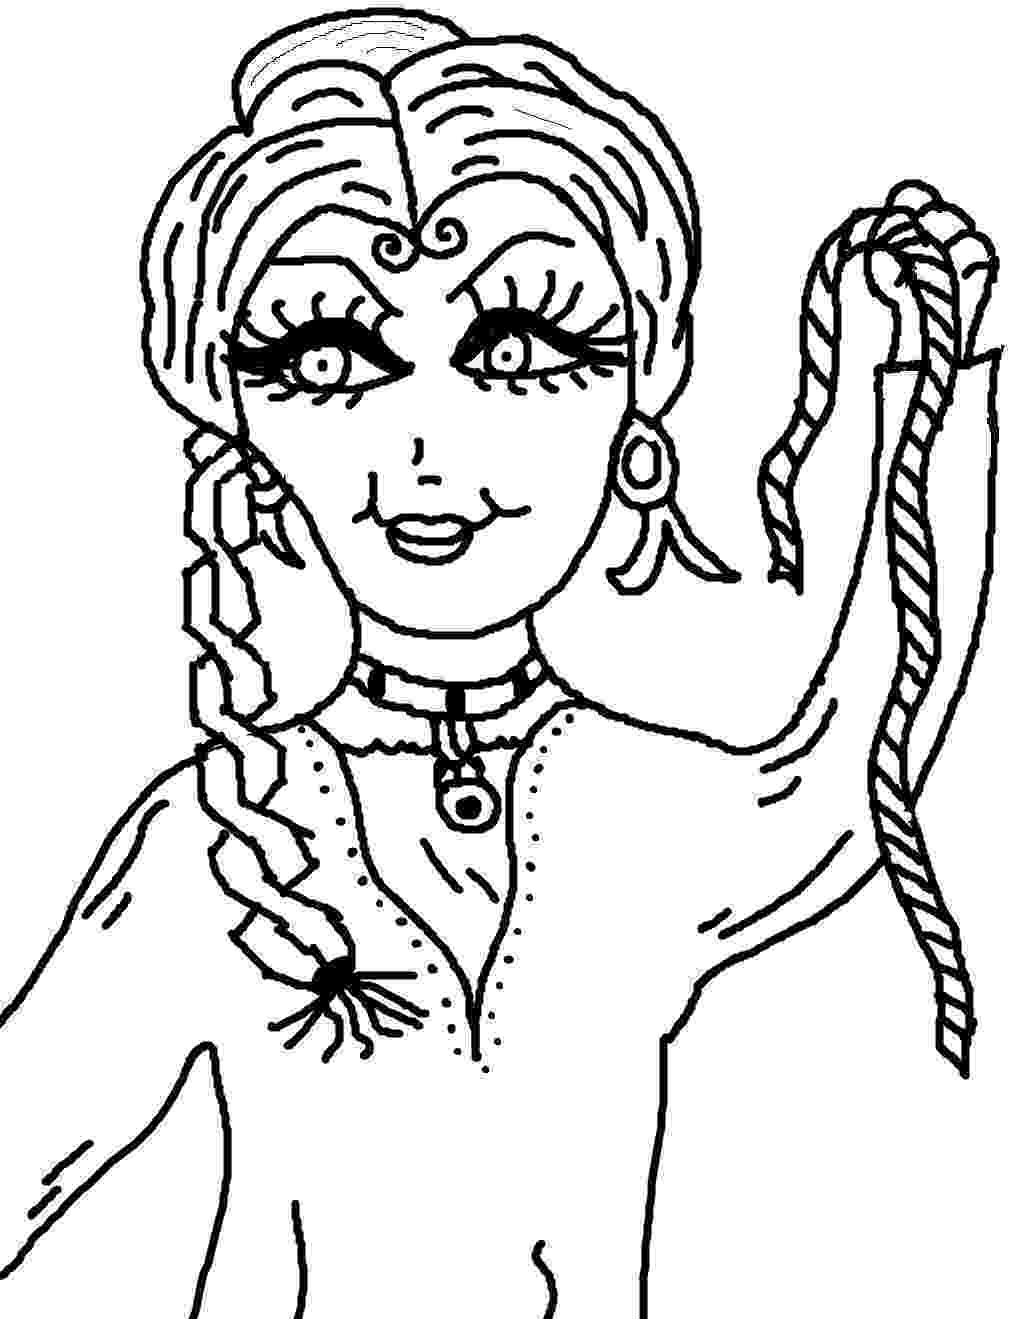 samson and delilah coloring pages samson and delilah coloring pages samson delilah and pages coloring